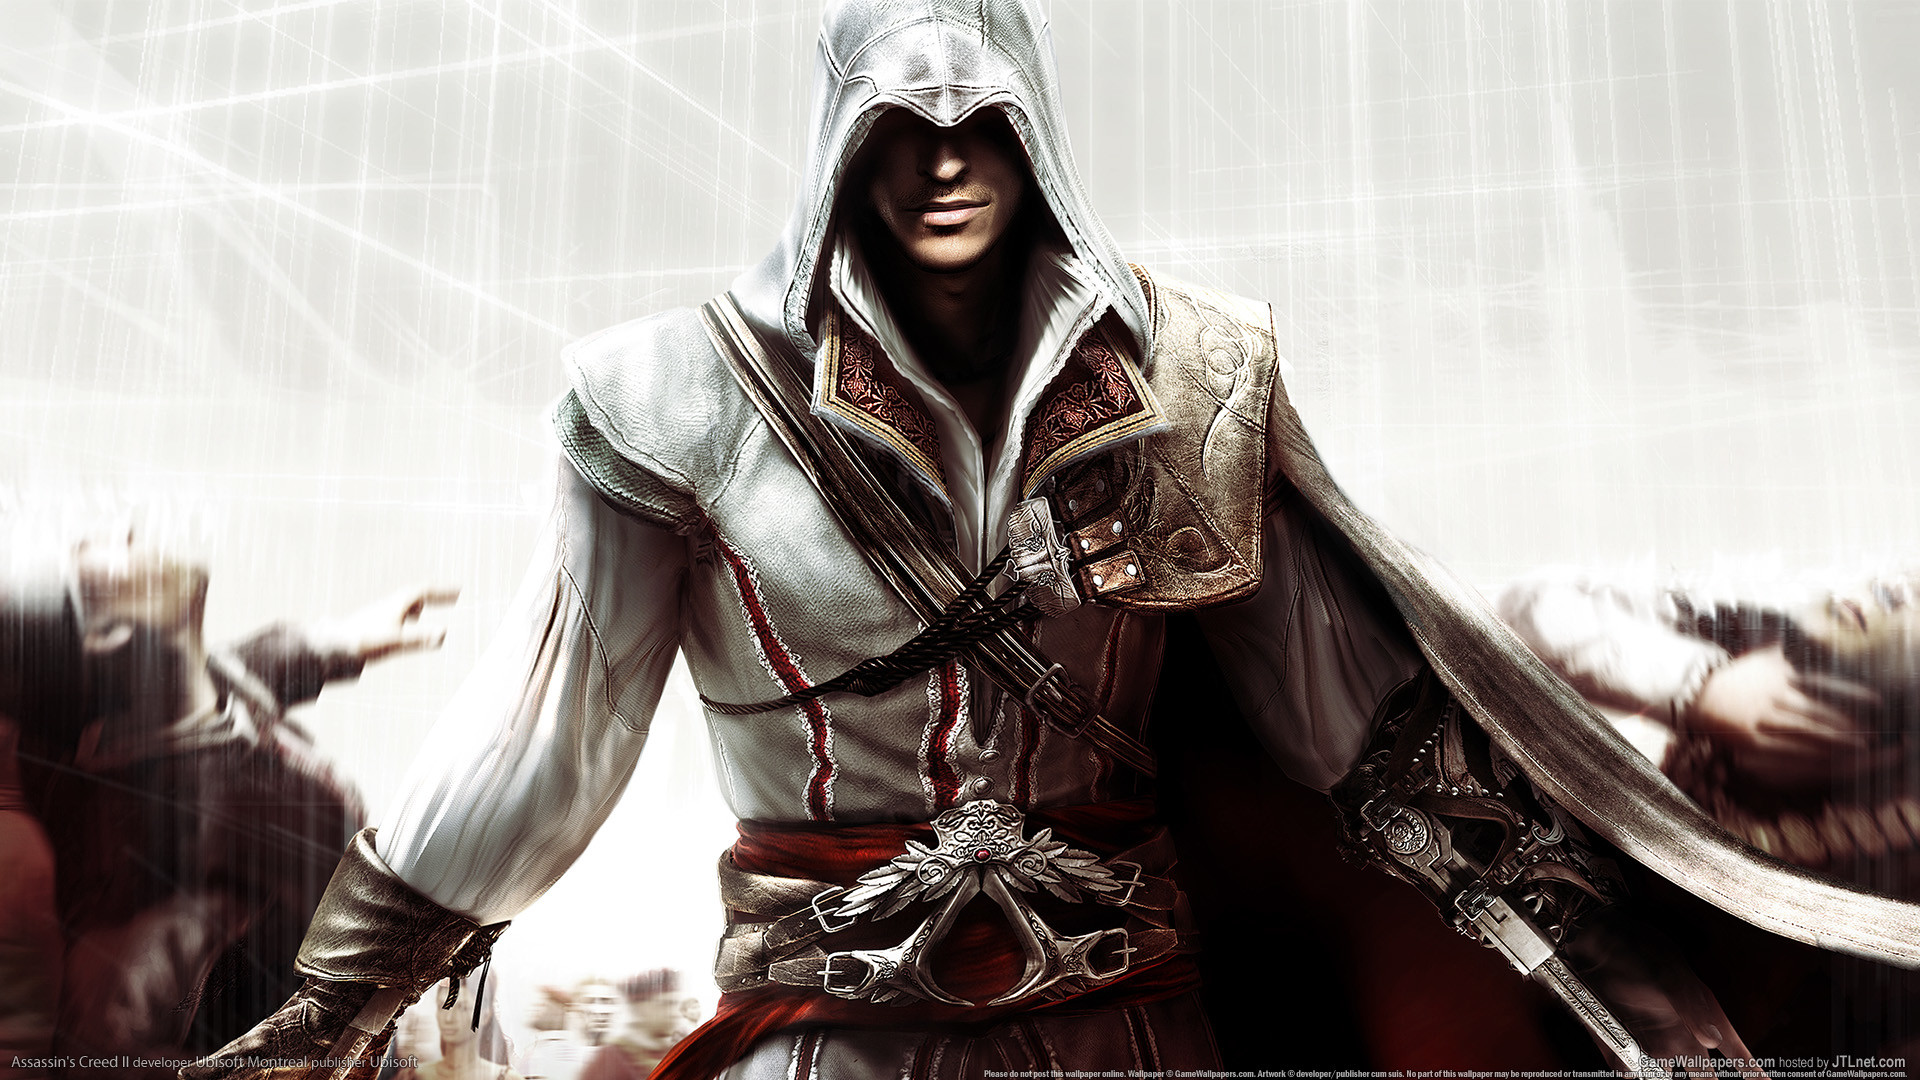 1920x1080 59 Assassin's Creed II HD Wallpapers | Backgrounds - Wallpaper Abyss ...